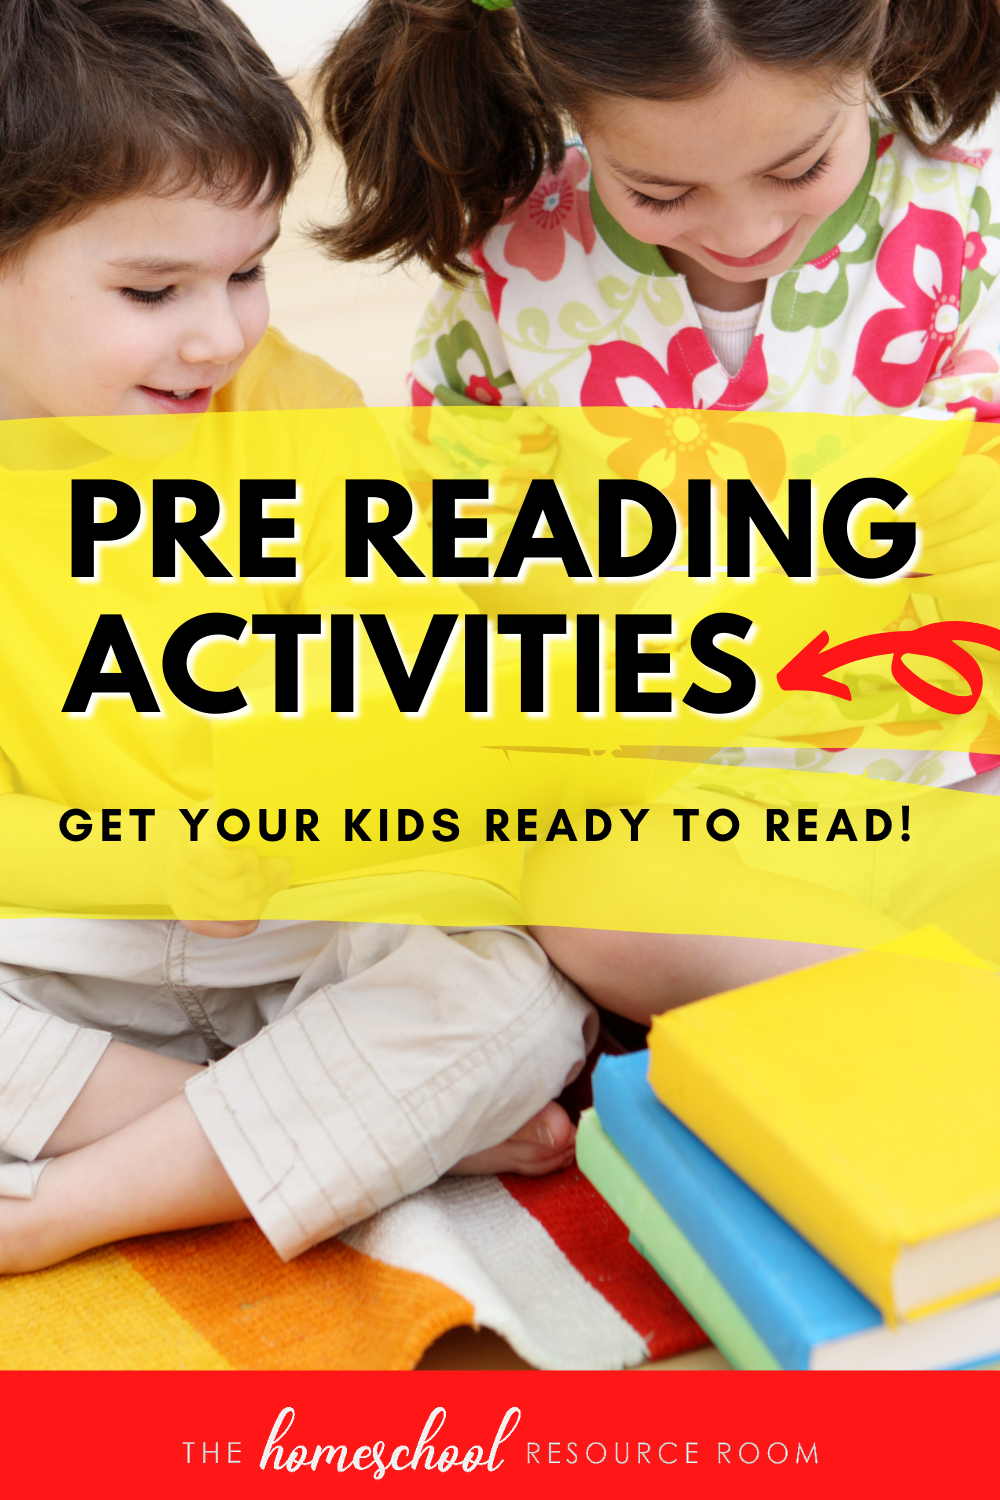 There's so many more pre reading activities you can do besides sing the ABC's. Here's how to build phonological awareness & language skills!